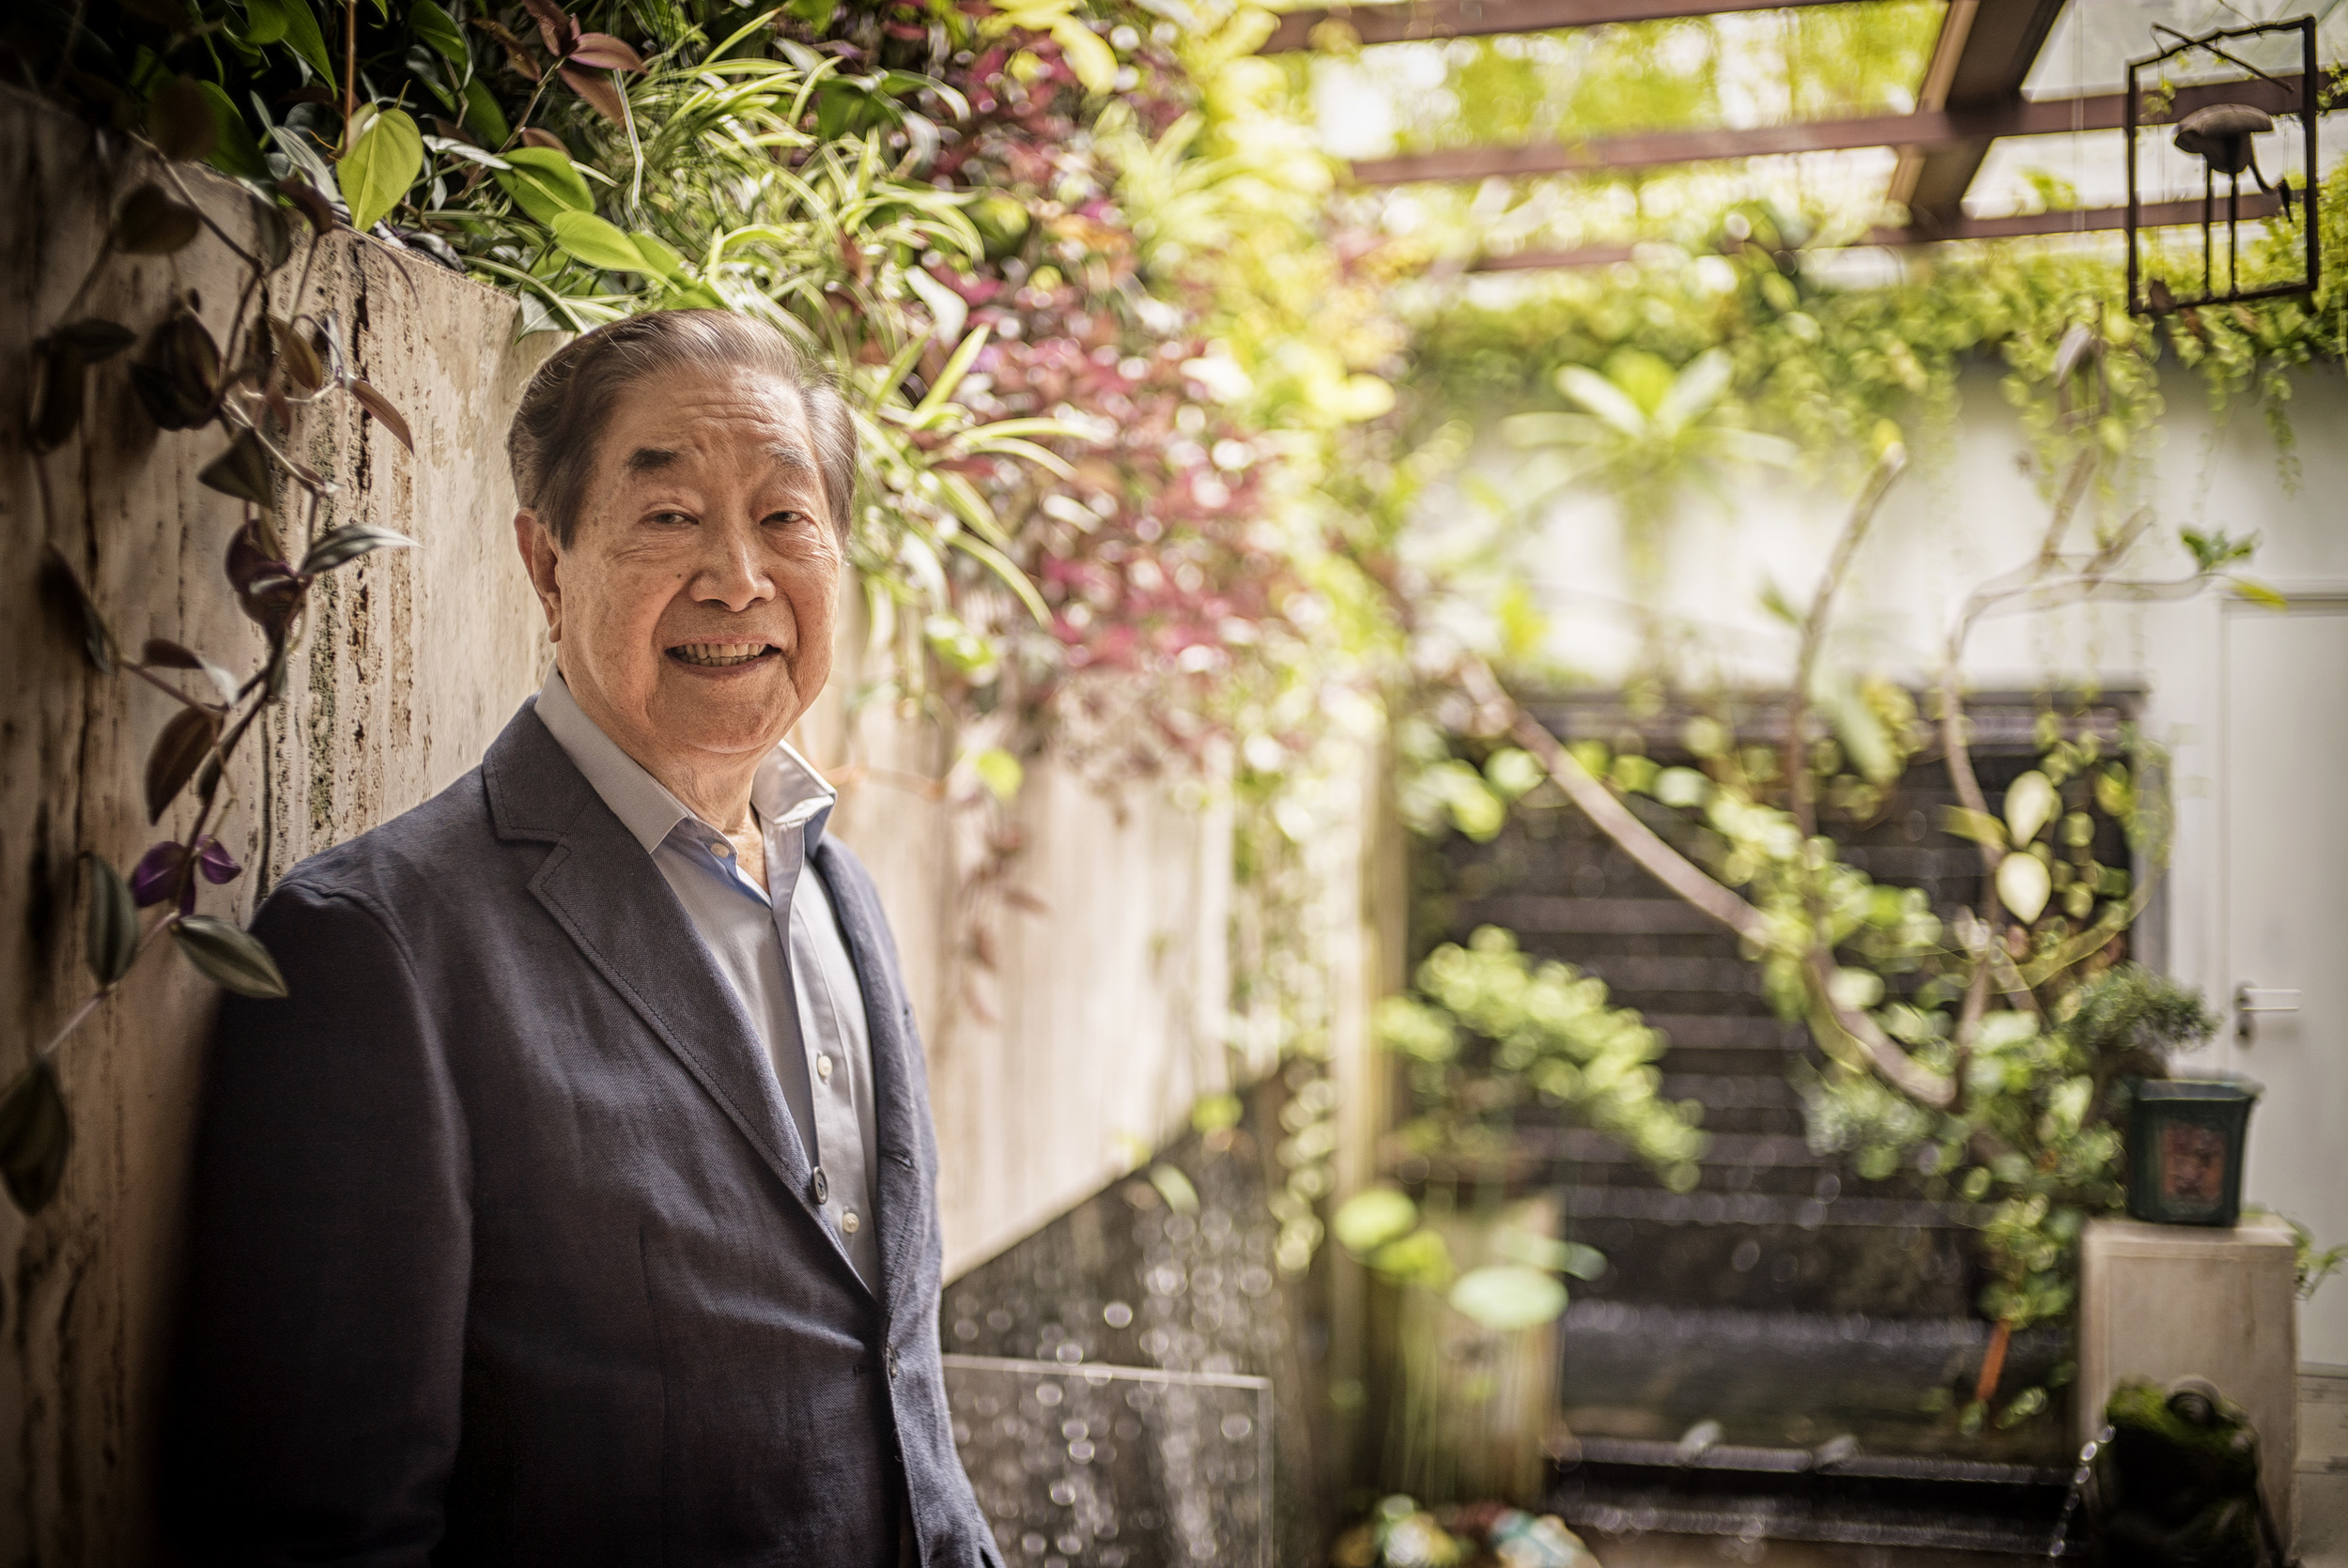 Architect Alan Choe was Singapore's first urban planner. During his time, prime land was sold to private developers to build malls and skyscrapers, transforming the skyline.